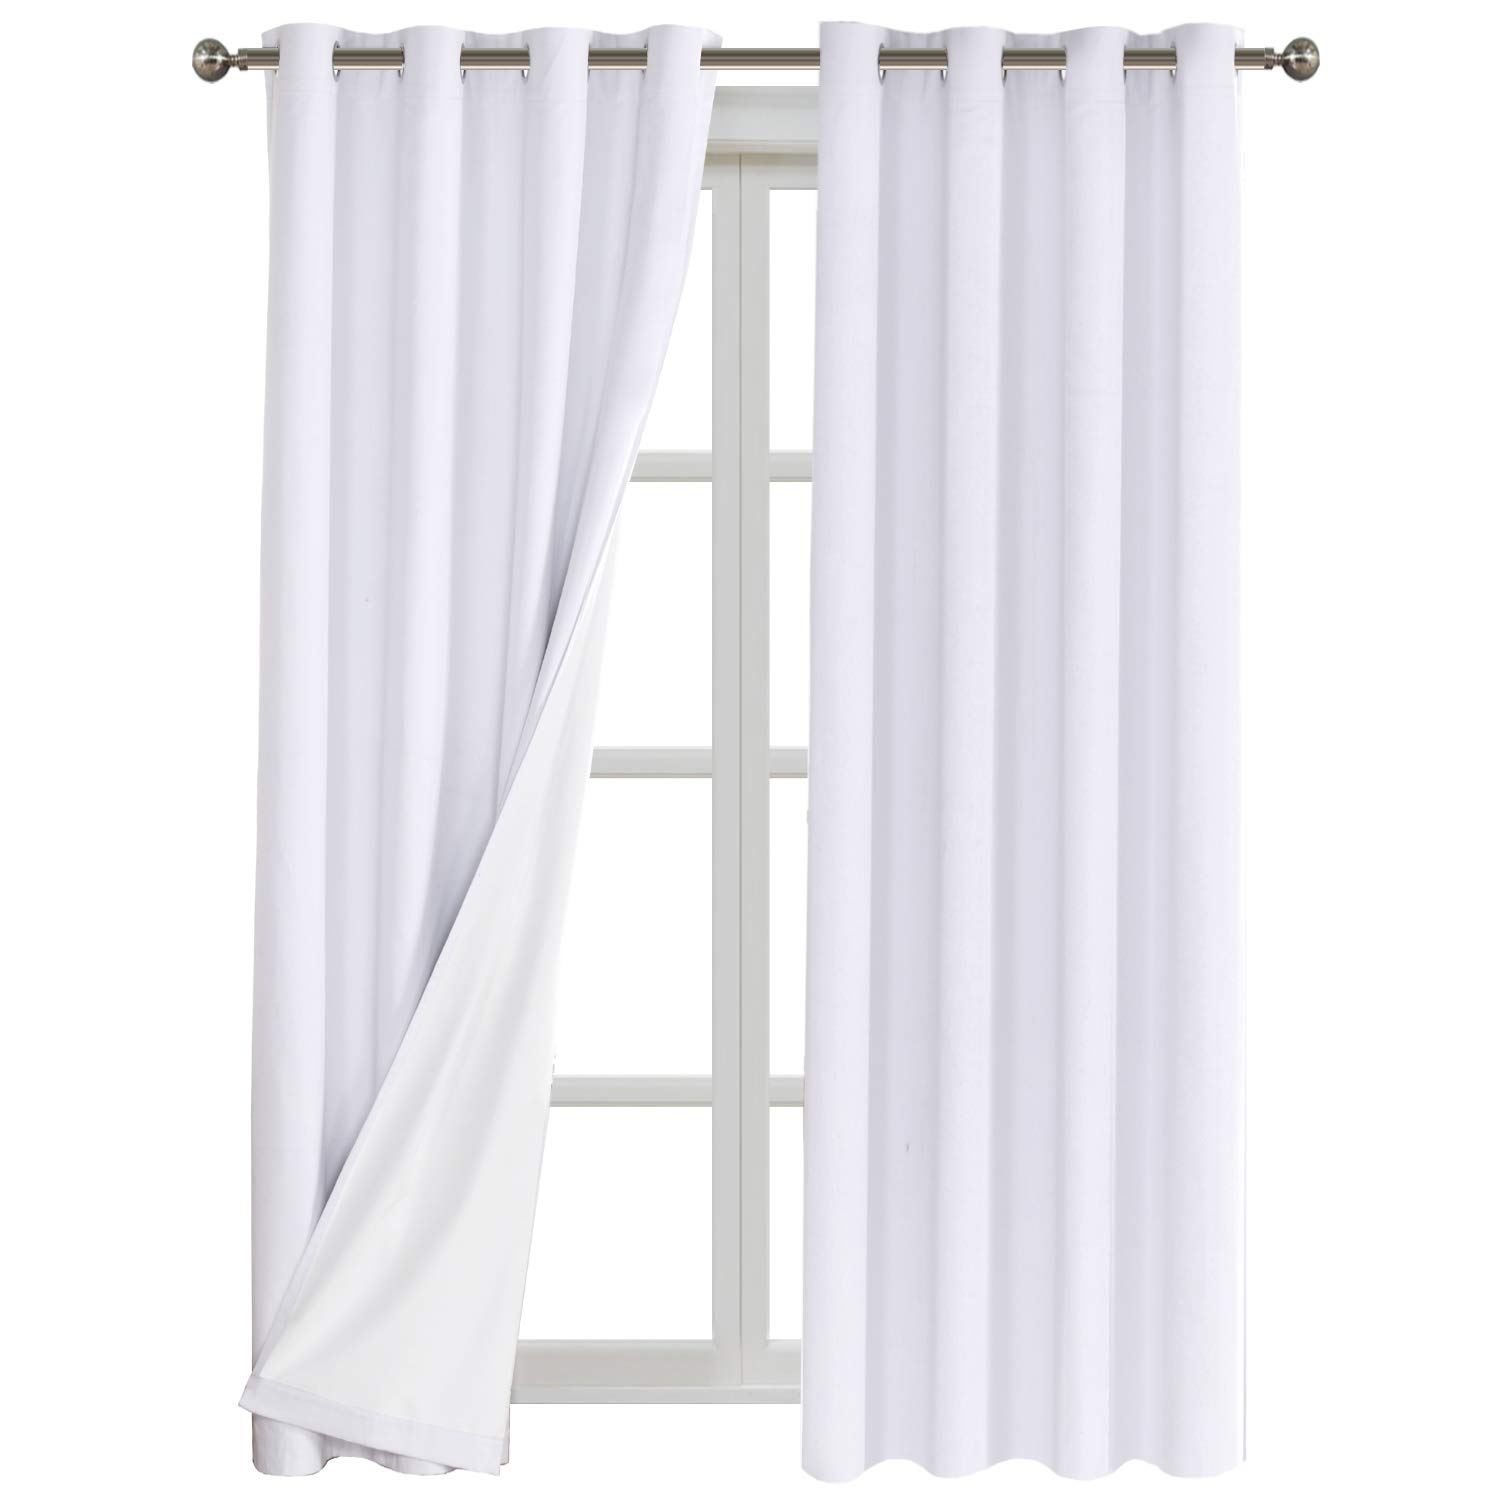 Full Light Blocking Window Treatment Curtains Grommet Top Linen Textured Primitive Blackout Panels Pair Thermal Insulated Curtains with White Backing Each 52 by 84 Inch Natural Flamingo P